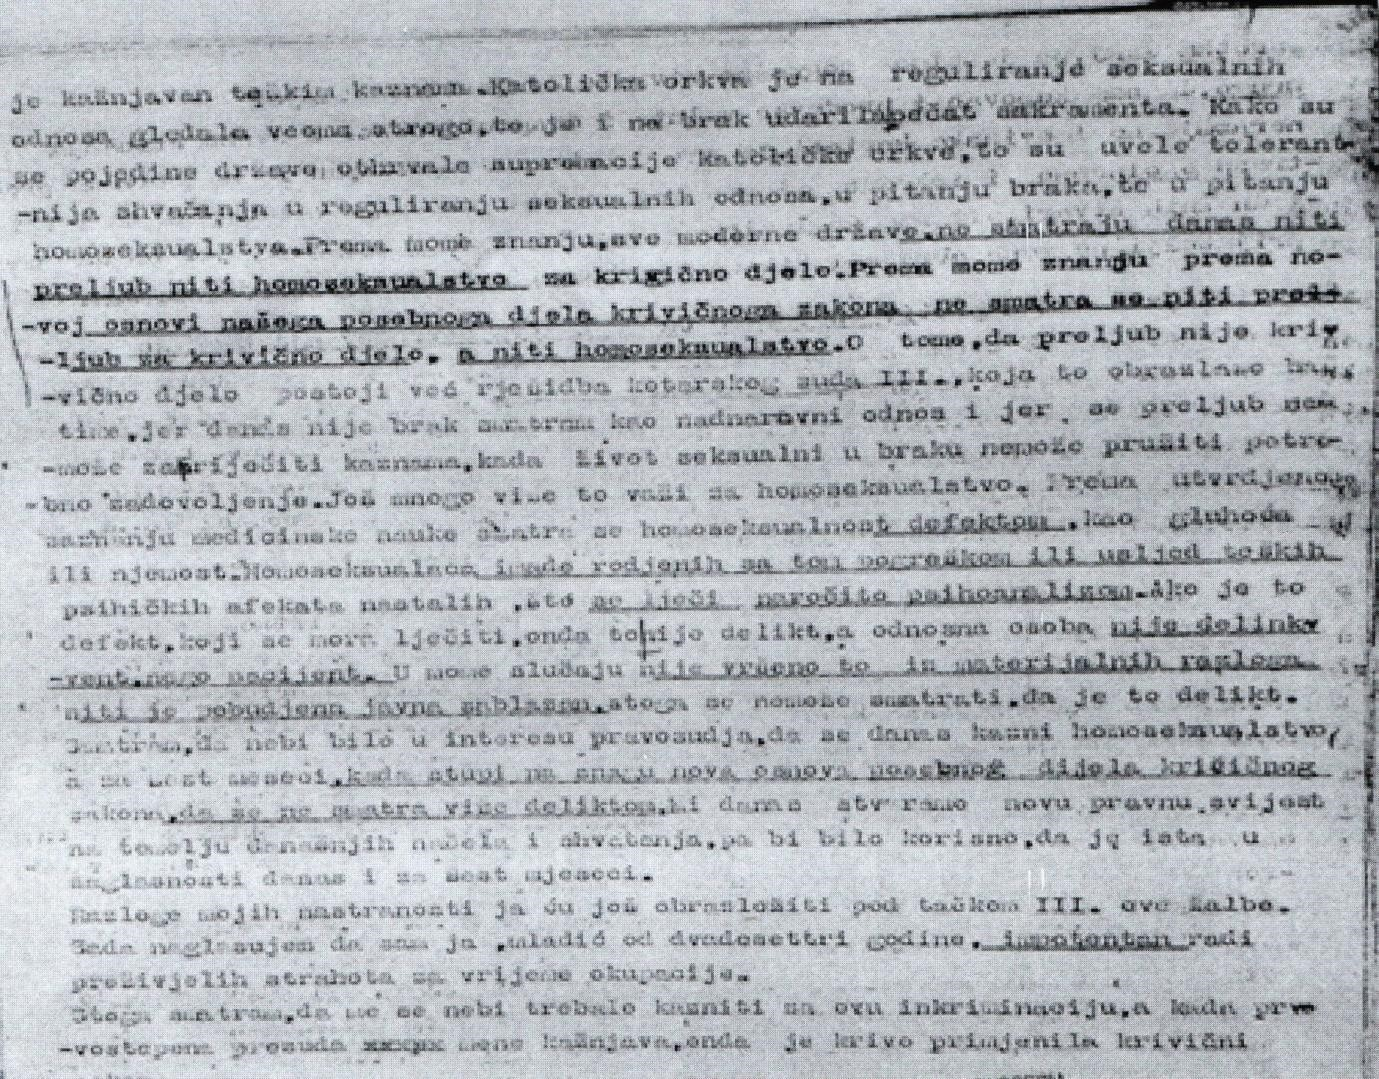 Appeal letter from Branko Vujaklija to the Zagreb District Court, December 1949.